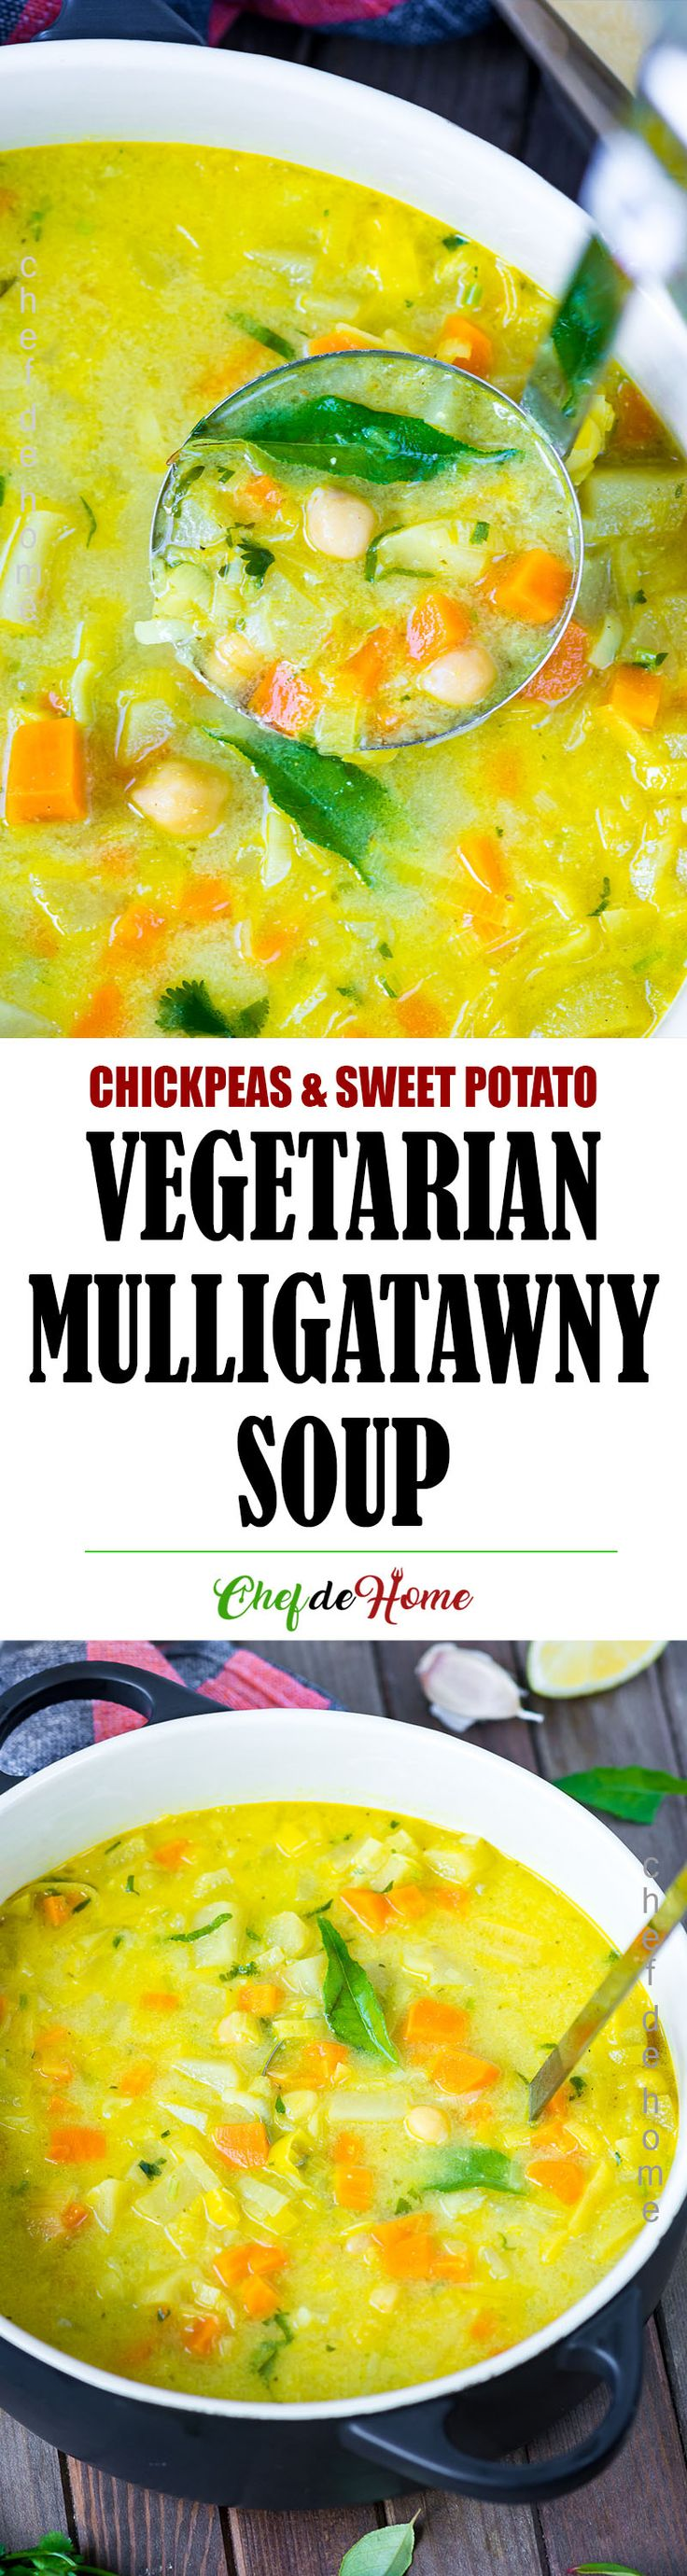 Vegetarian Mulligatawny Soup - Healthy and nourishing Sweet Potato, Lentils, and Chickpeas Mulligatawny Curry Soup!